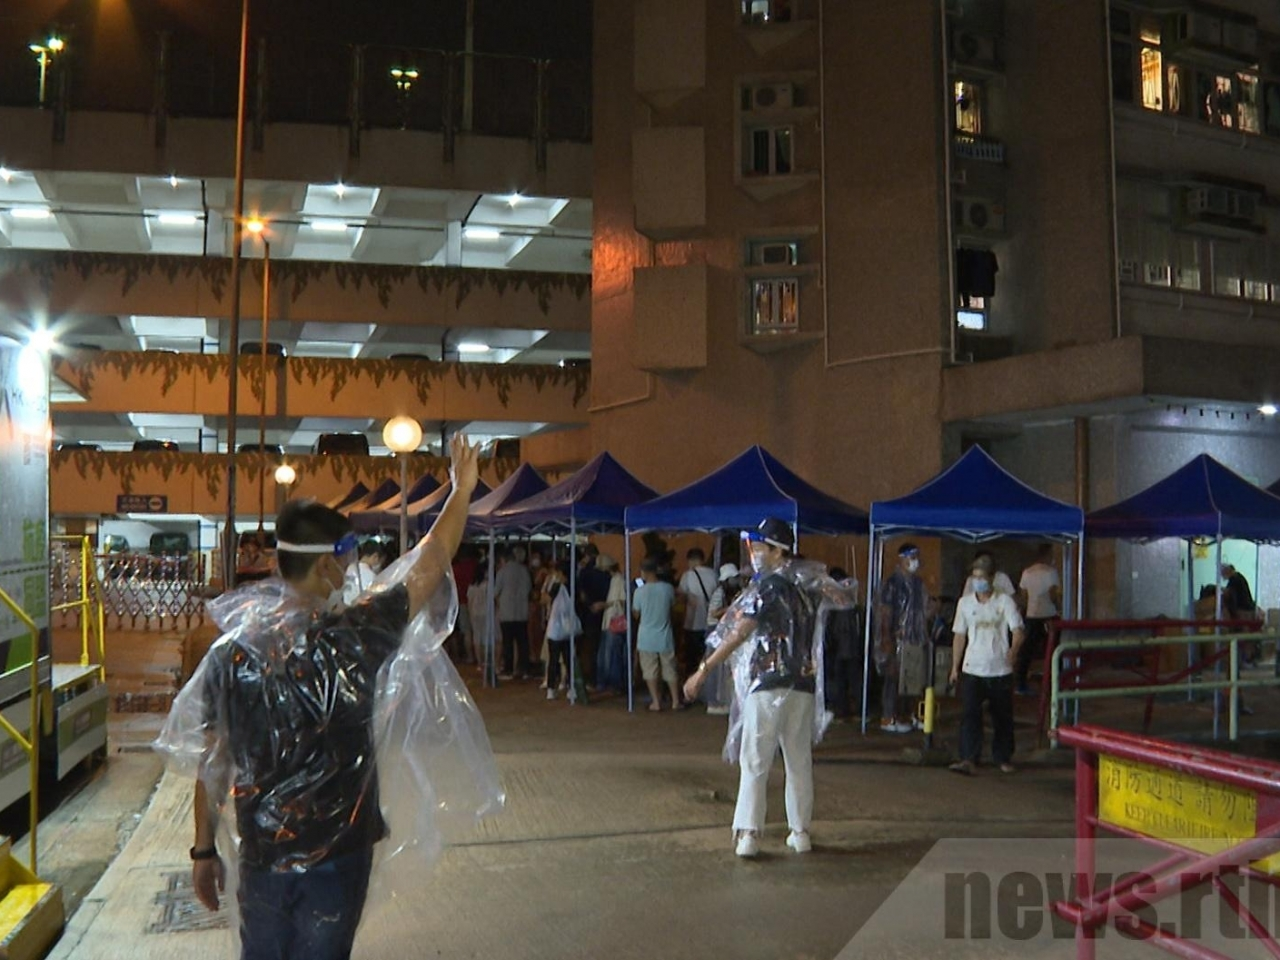 No more Covid cases found so far in Wan Hang House